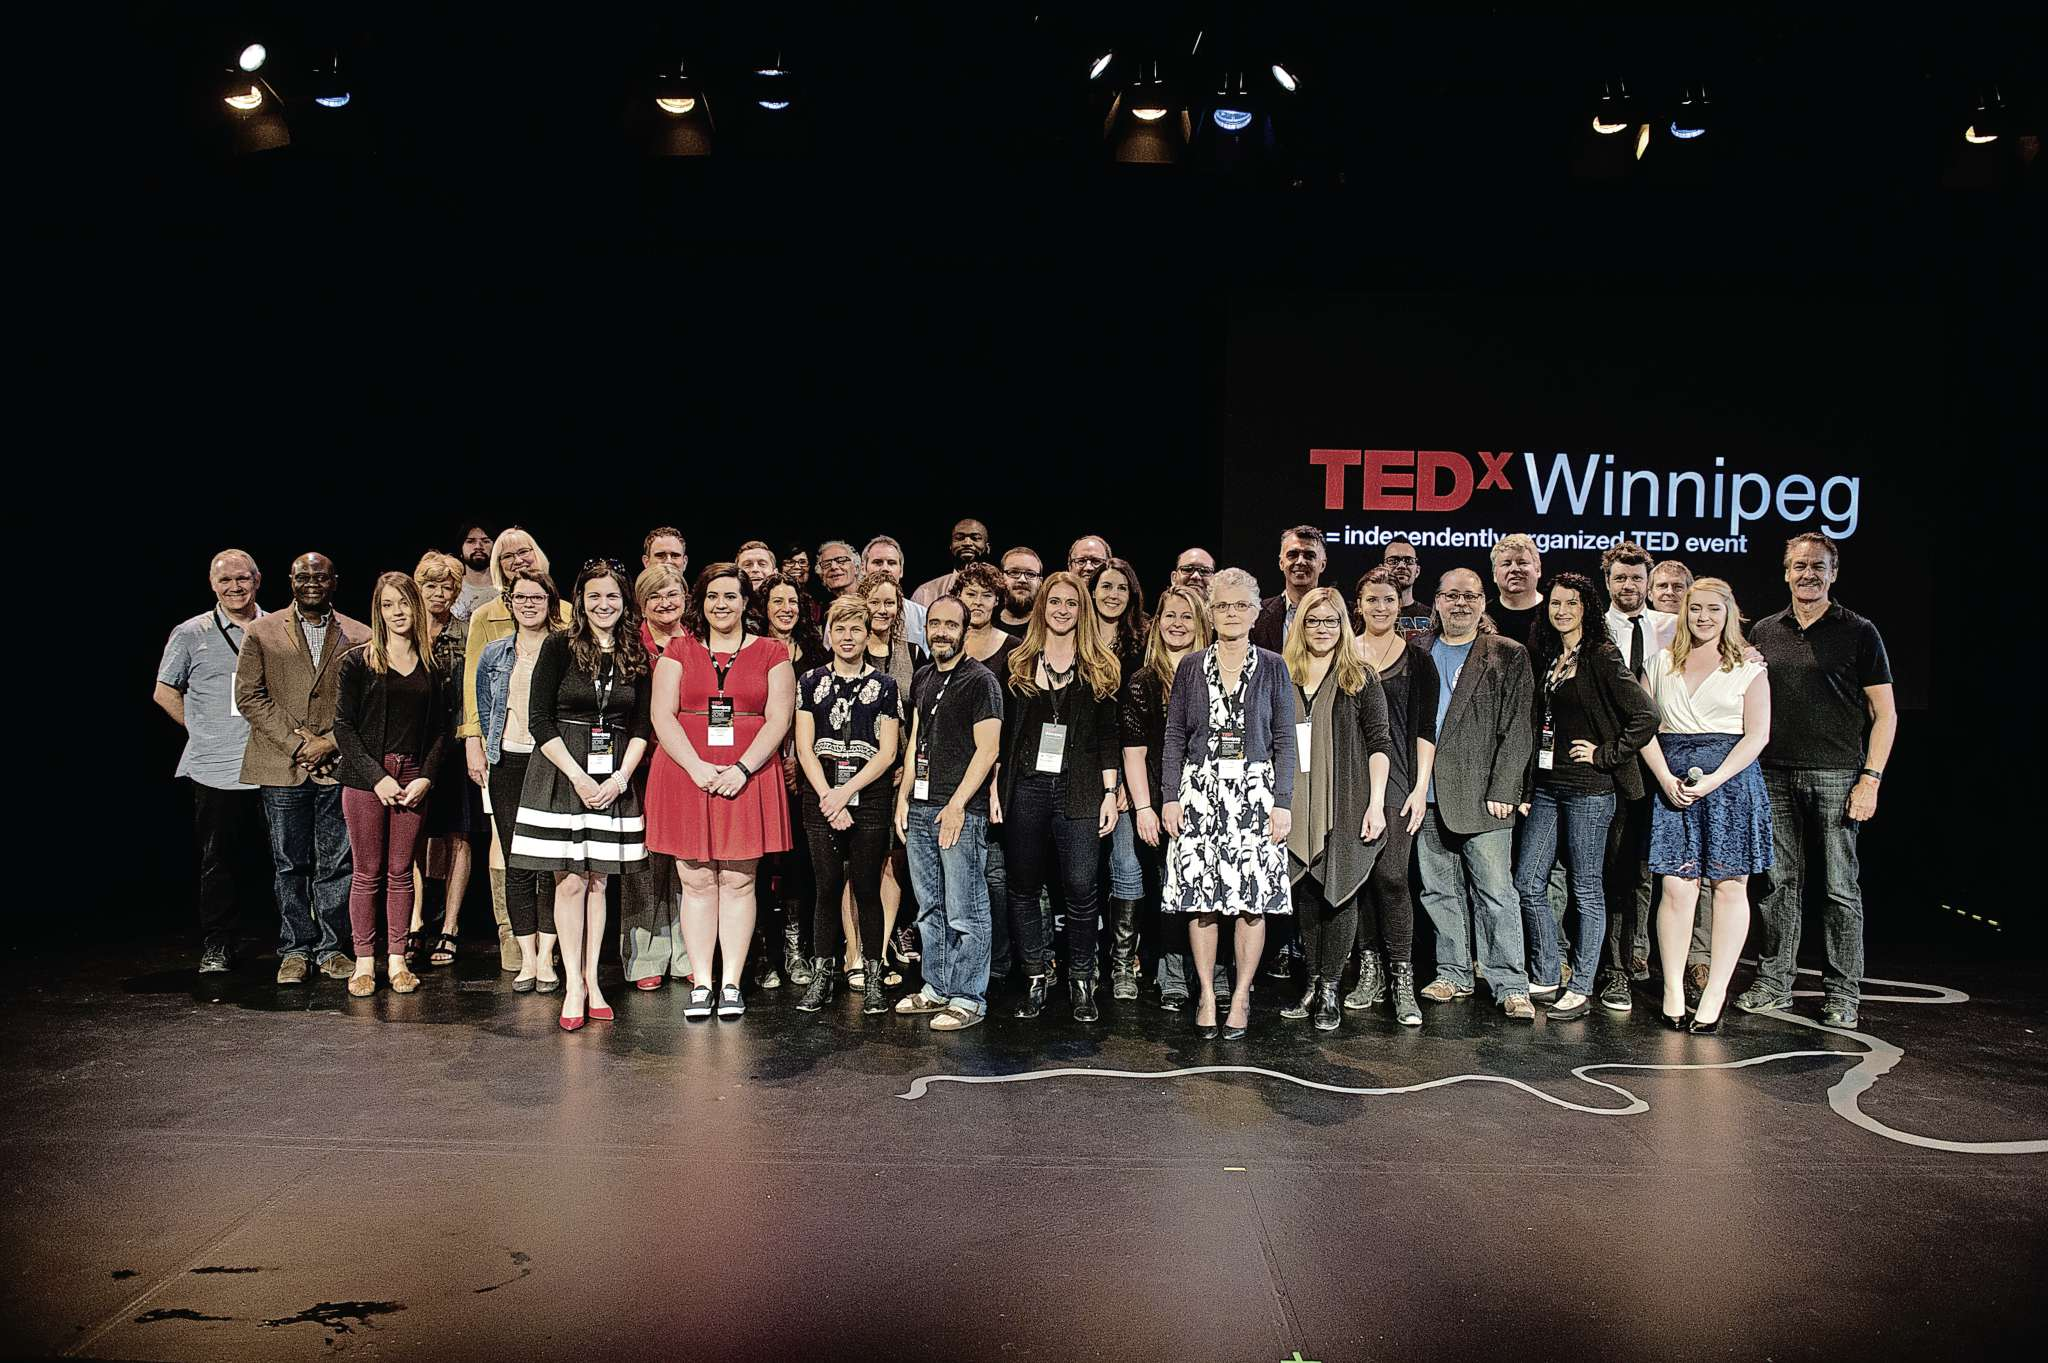 TEDx Winnipeg's 2016 presenters and crew. This year's event takes place on June 6.